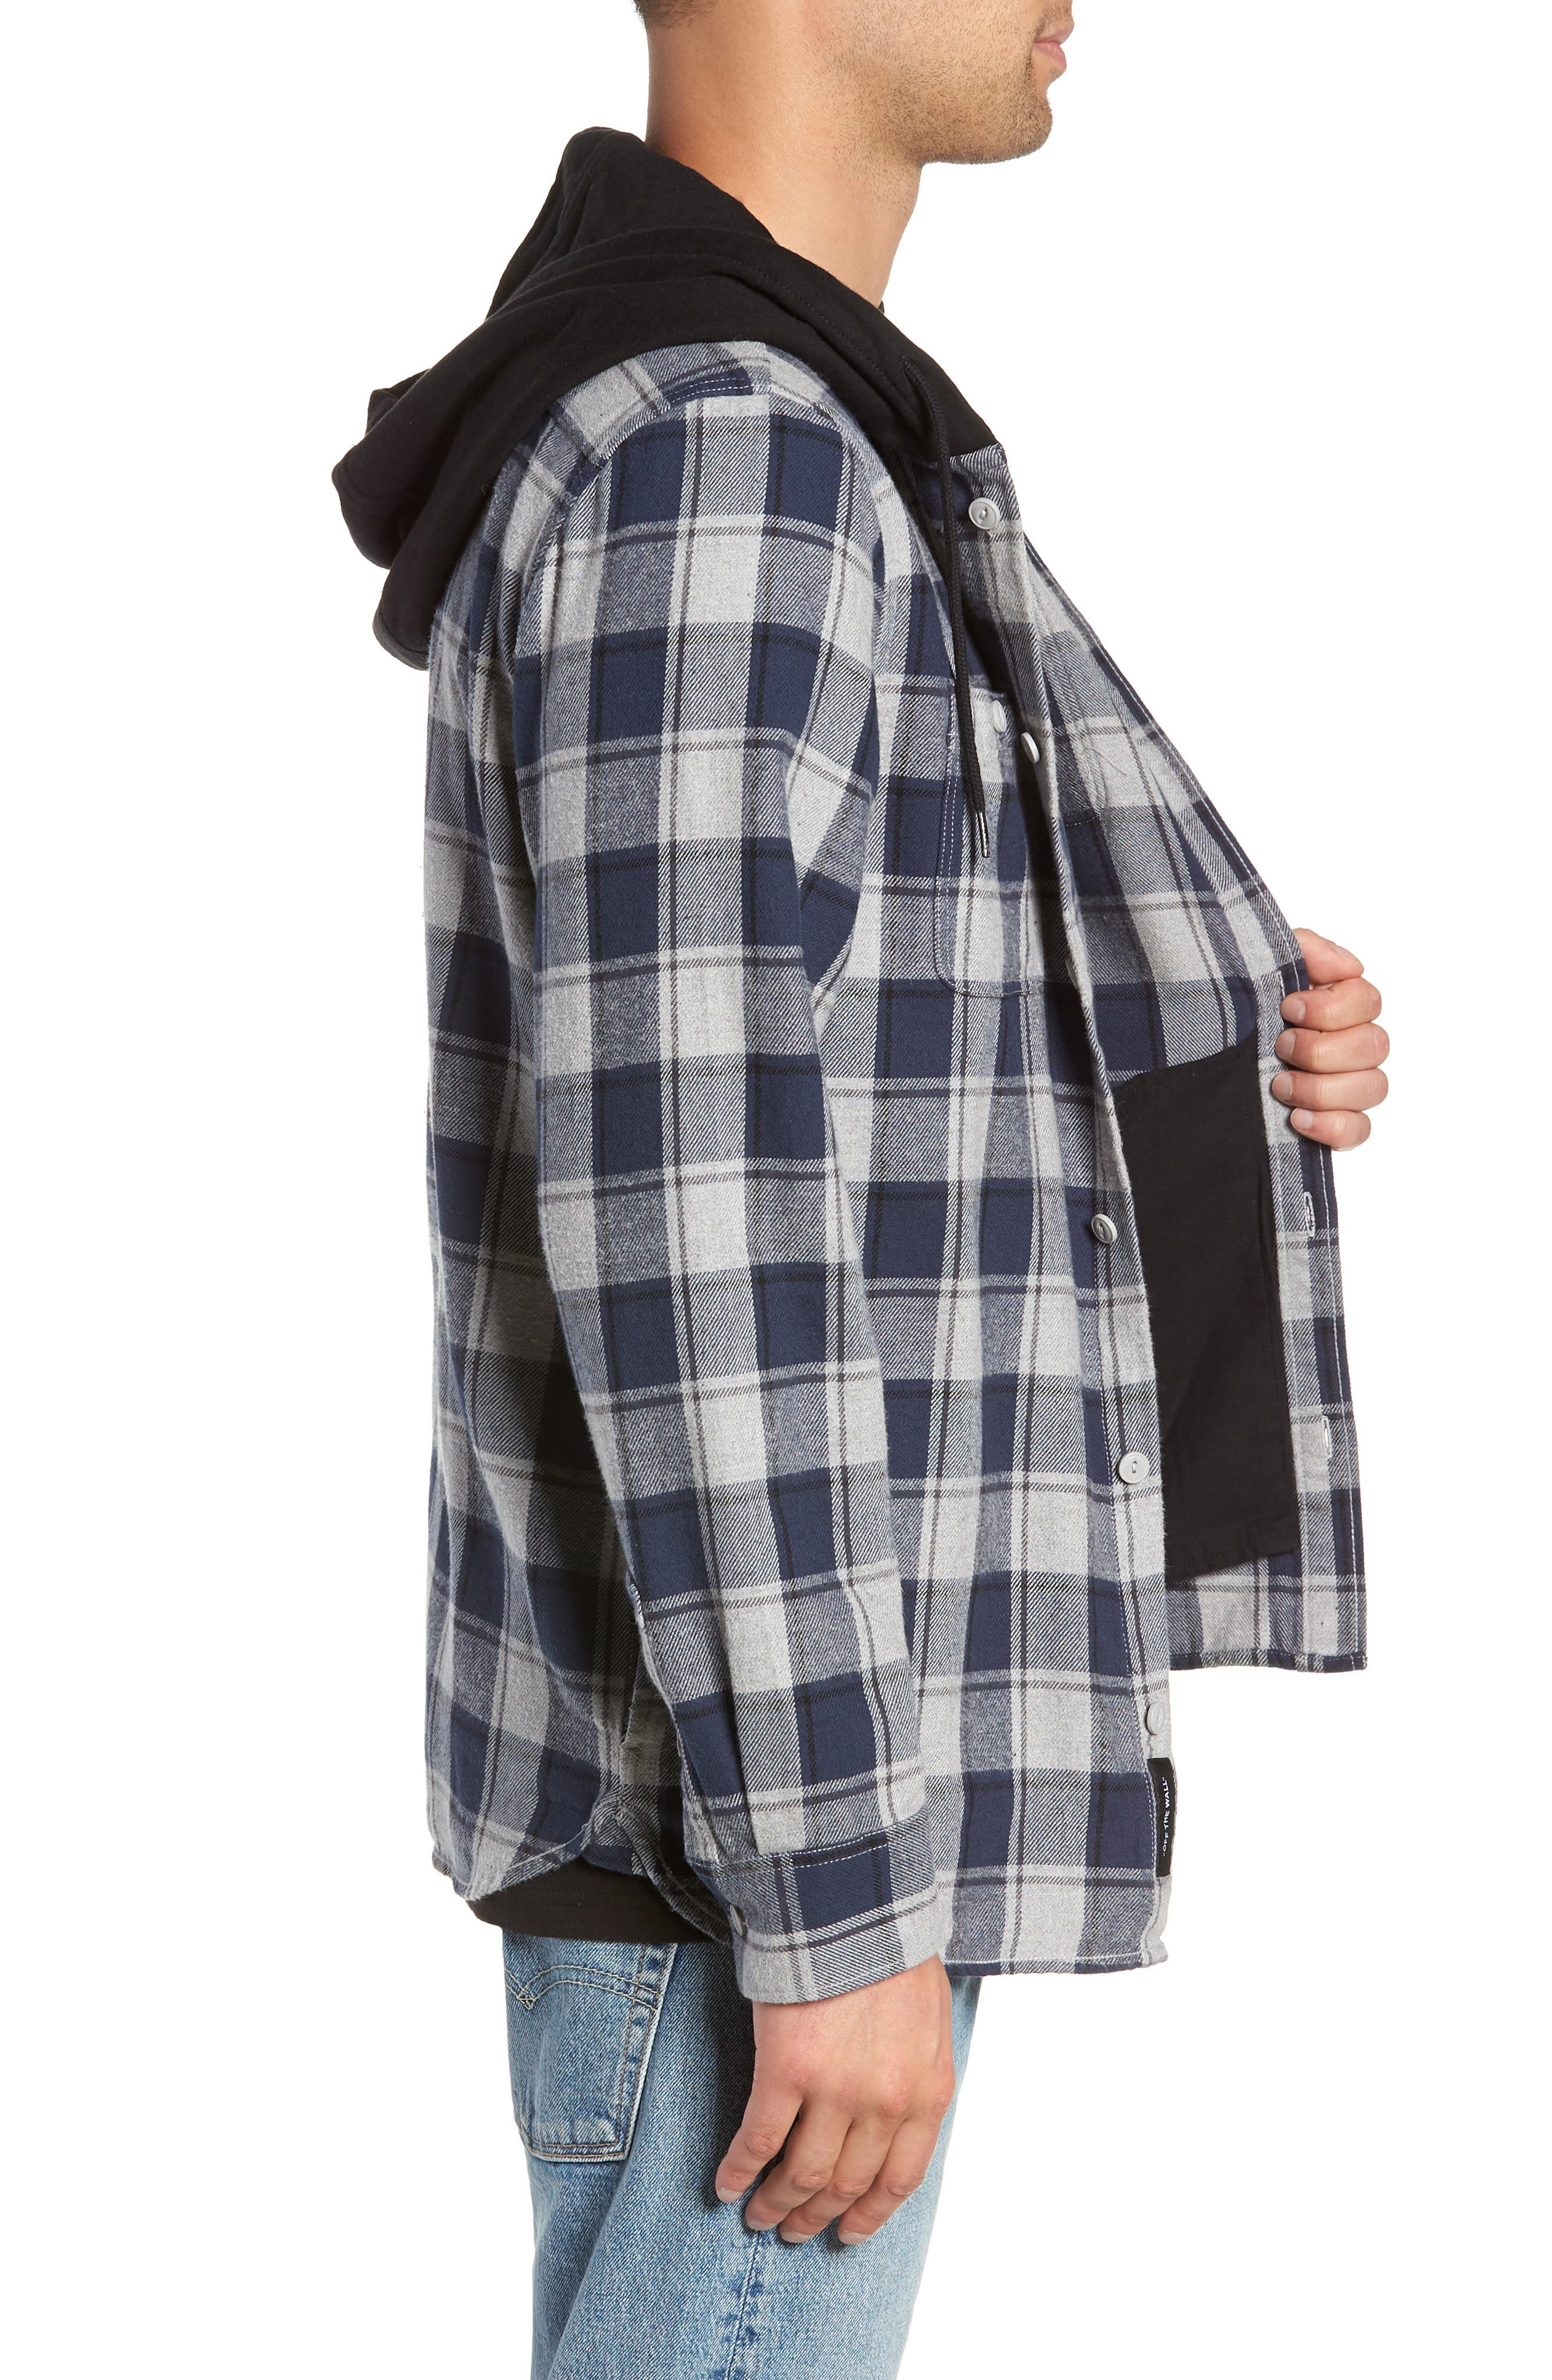 Lopes Hooded Plaid Flannel Jacket,                             Alternate thumbnail 3, color,                             DRESS BLUES/ GREY HEATHER